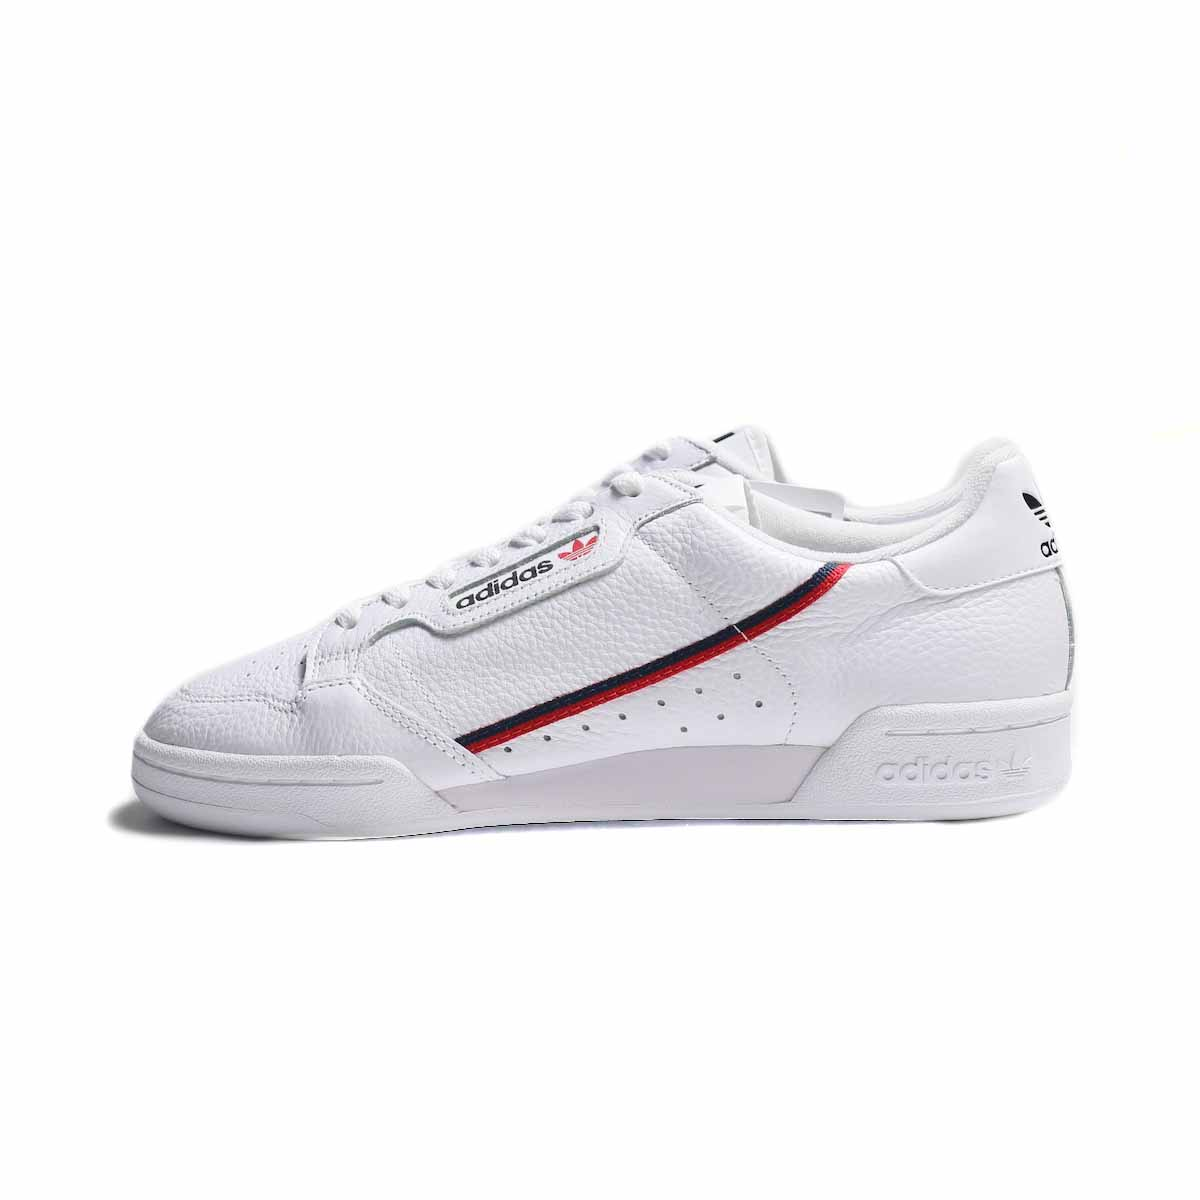 adidas originals / CONTINENTAL80 (G27706) -White